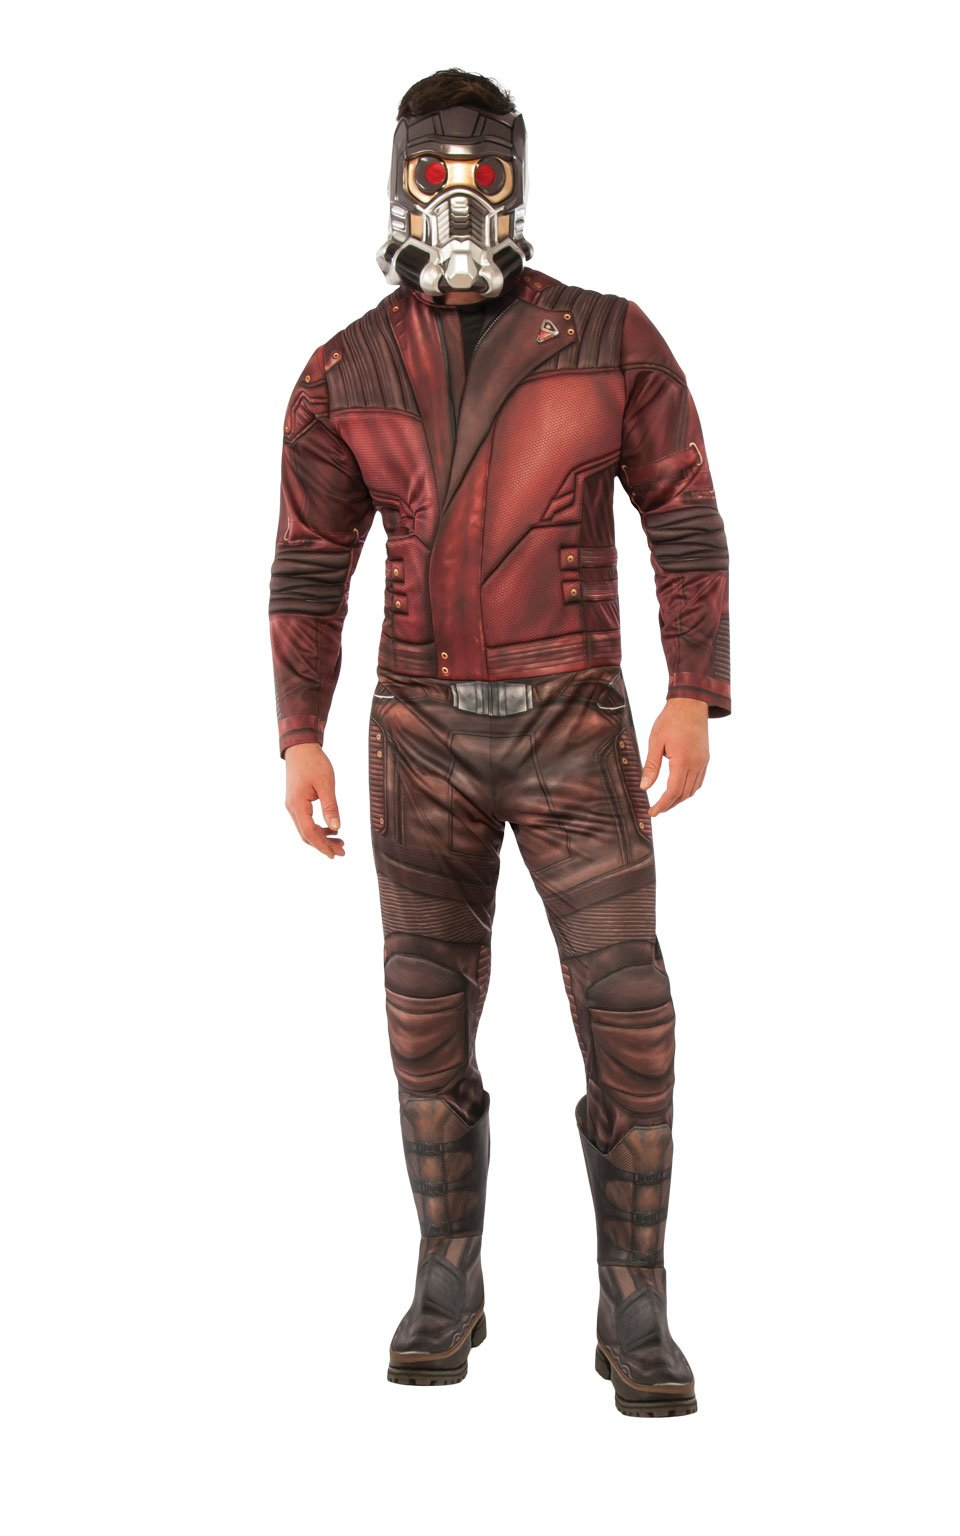 Rubie's Costume Co Guardians of The Galaxy Vol. 2 Star-Lord Costume Top and Mask, Deluxe, Standard